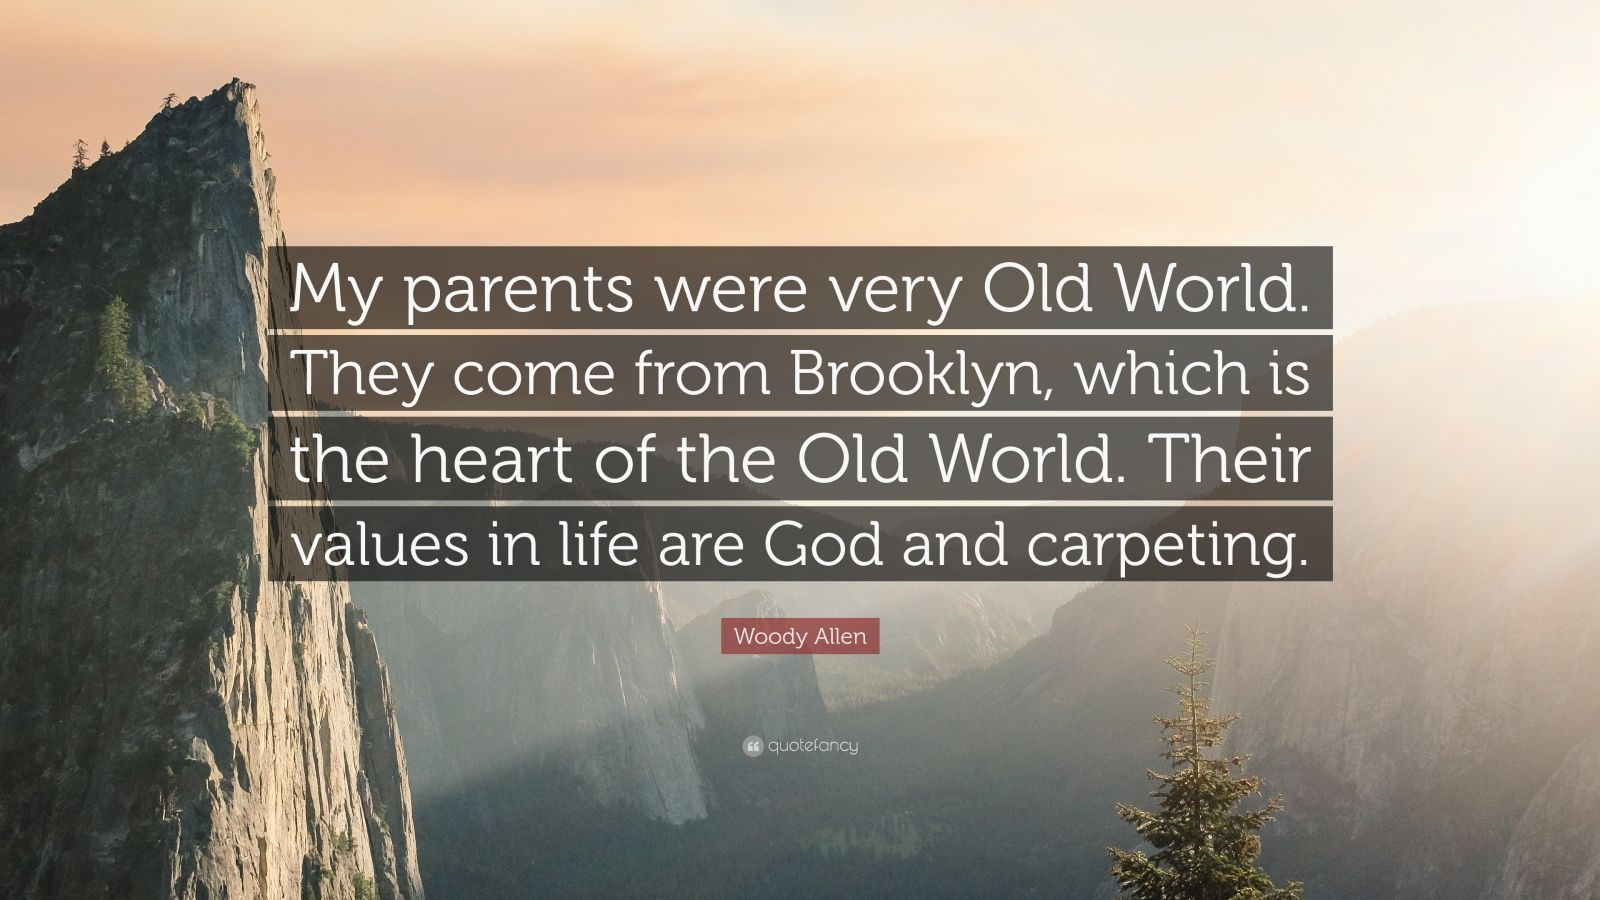 """Woody Allen Quote: """"My parents were very Old World. They come from Brooklyn, which is the heart of the Old World. Their values in life are God and carpeting."""""""